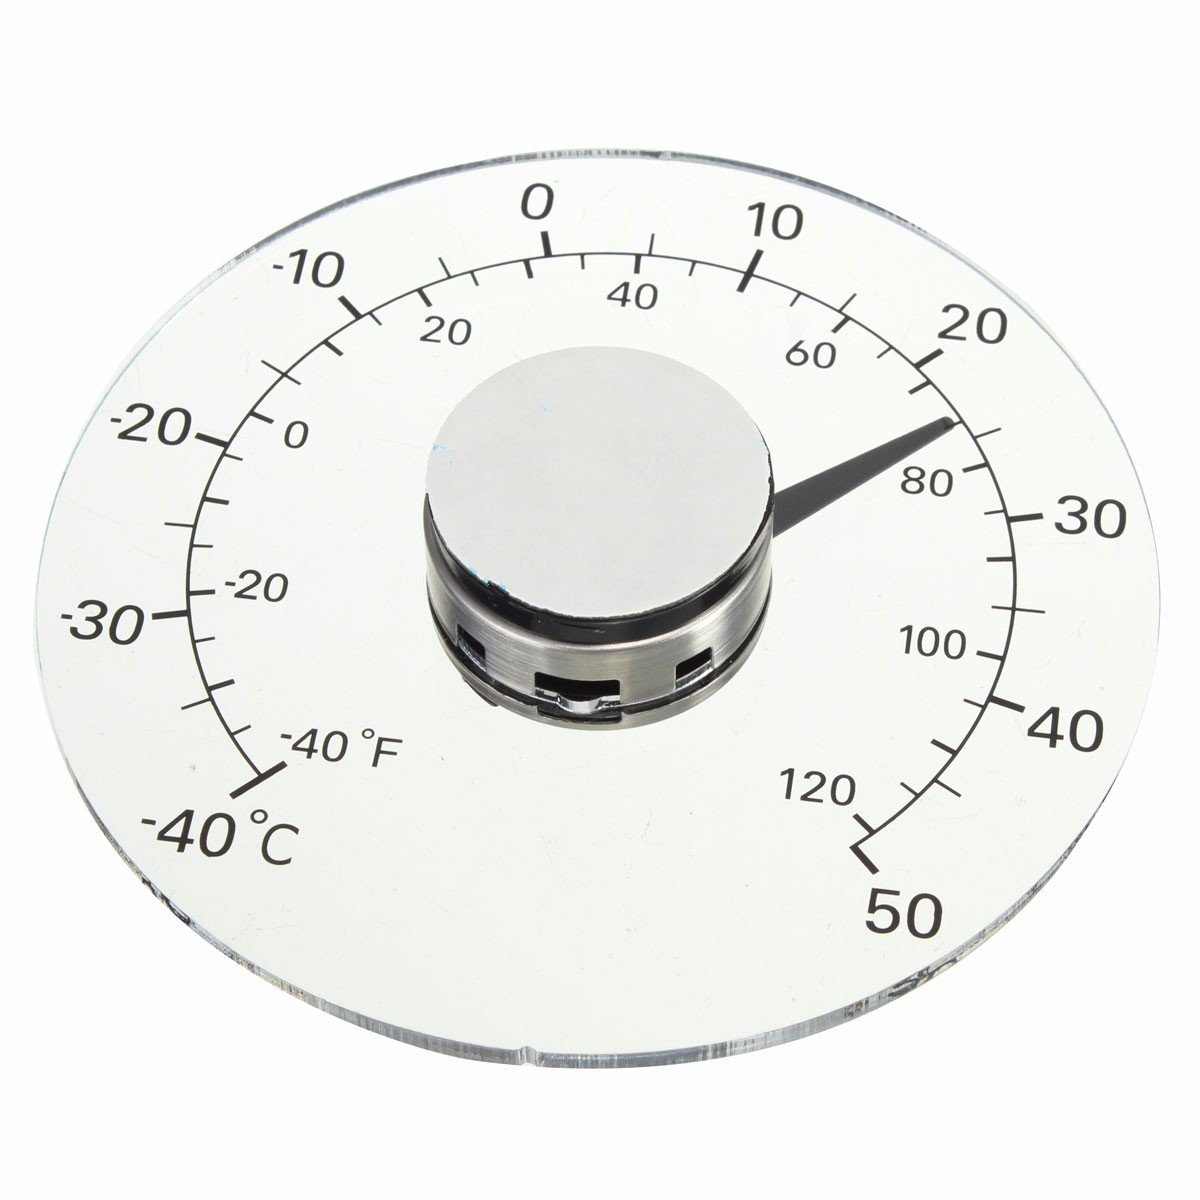 KING DO WAY Fensterthermometer Temperatur Meter Aussenthermometer Thermometer Wetterstation